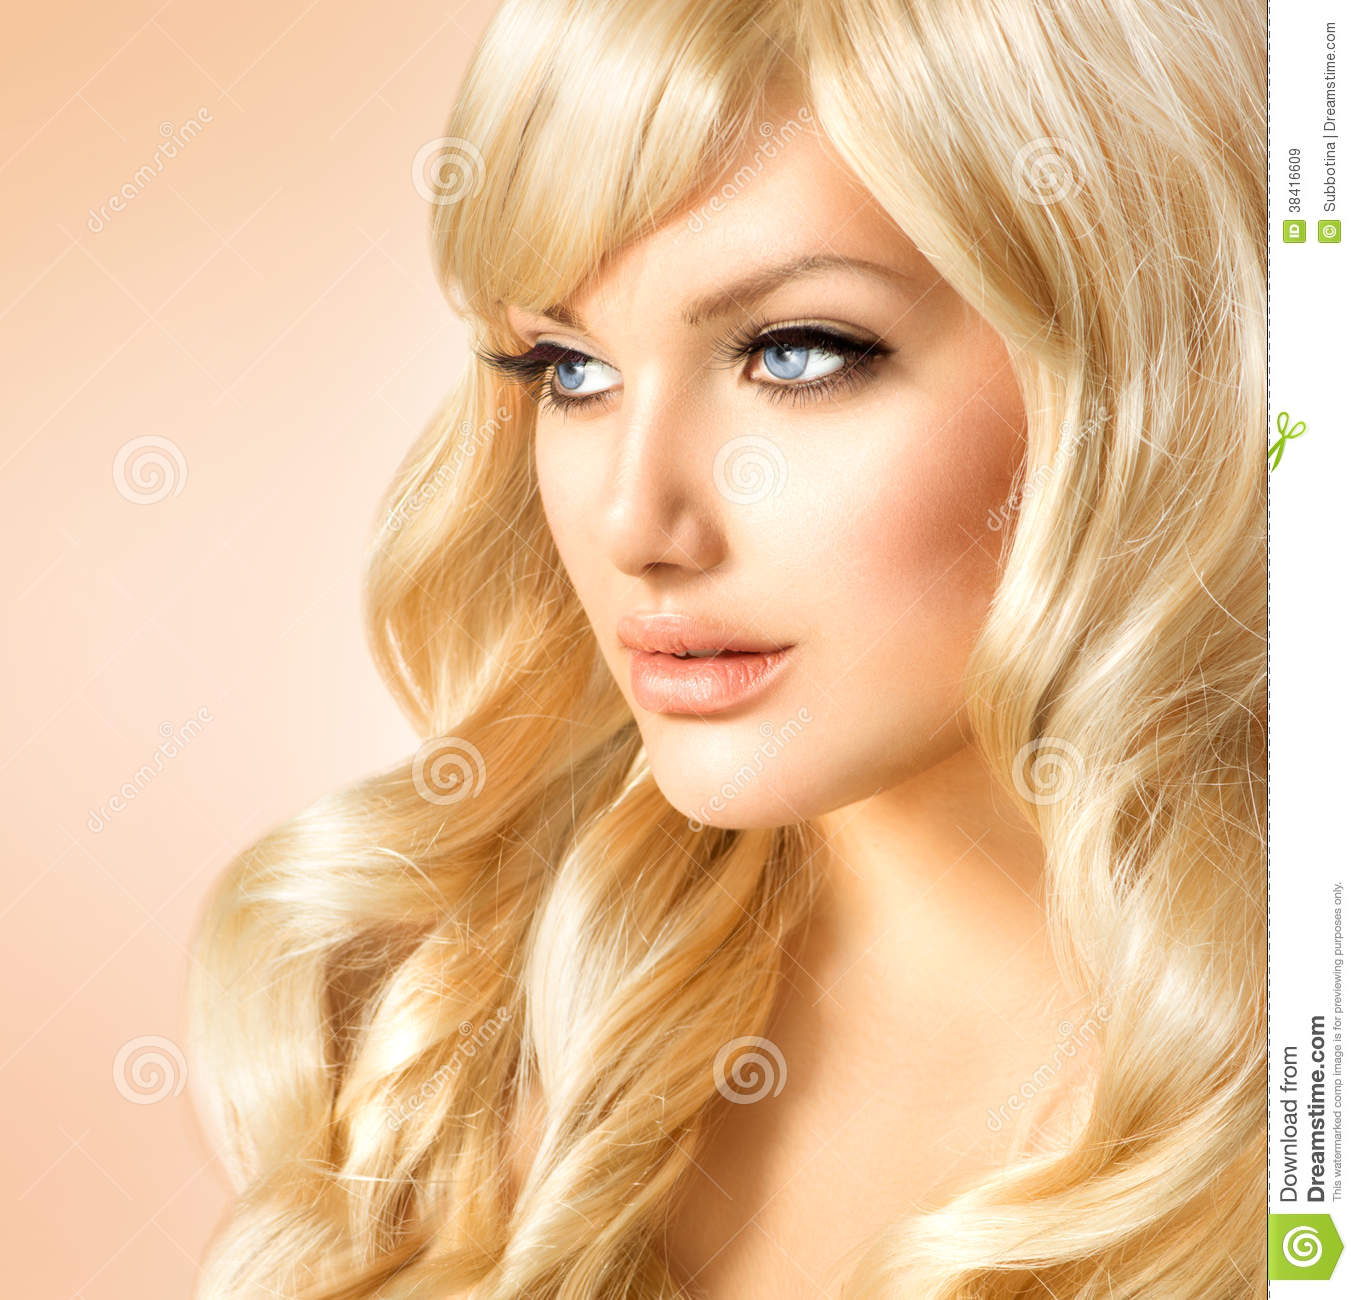 Blonde Woman Portrait Royalty Free Stock Images Image